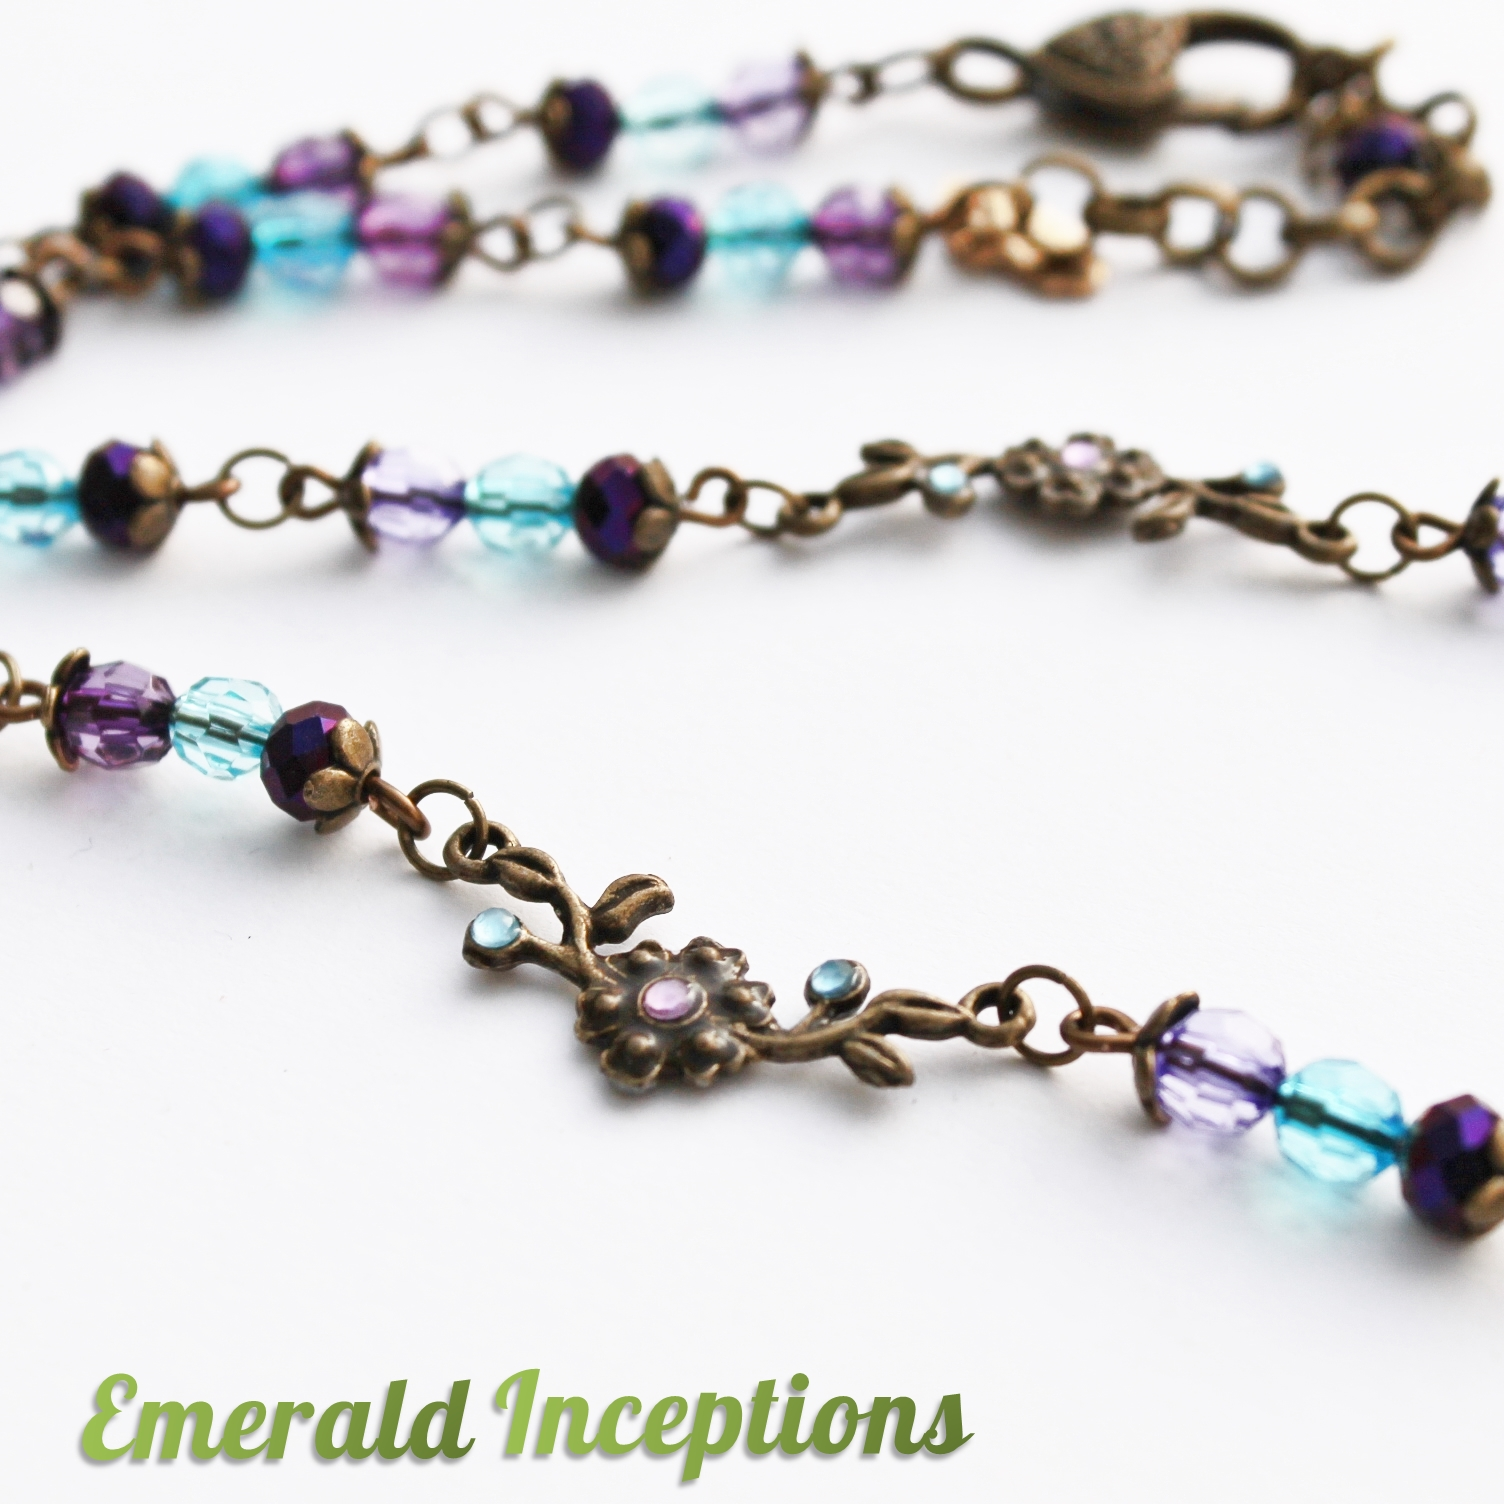 steampunk_butterfly_necklace_purple_lilac_turquoise_wing_necklaces_4.JPG